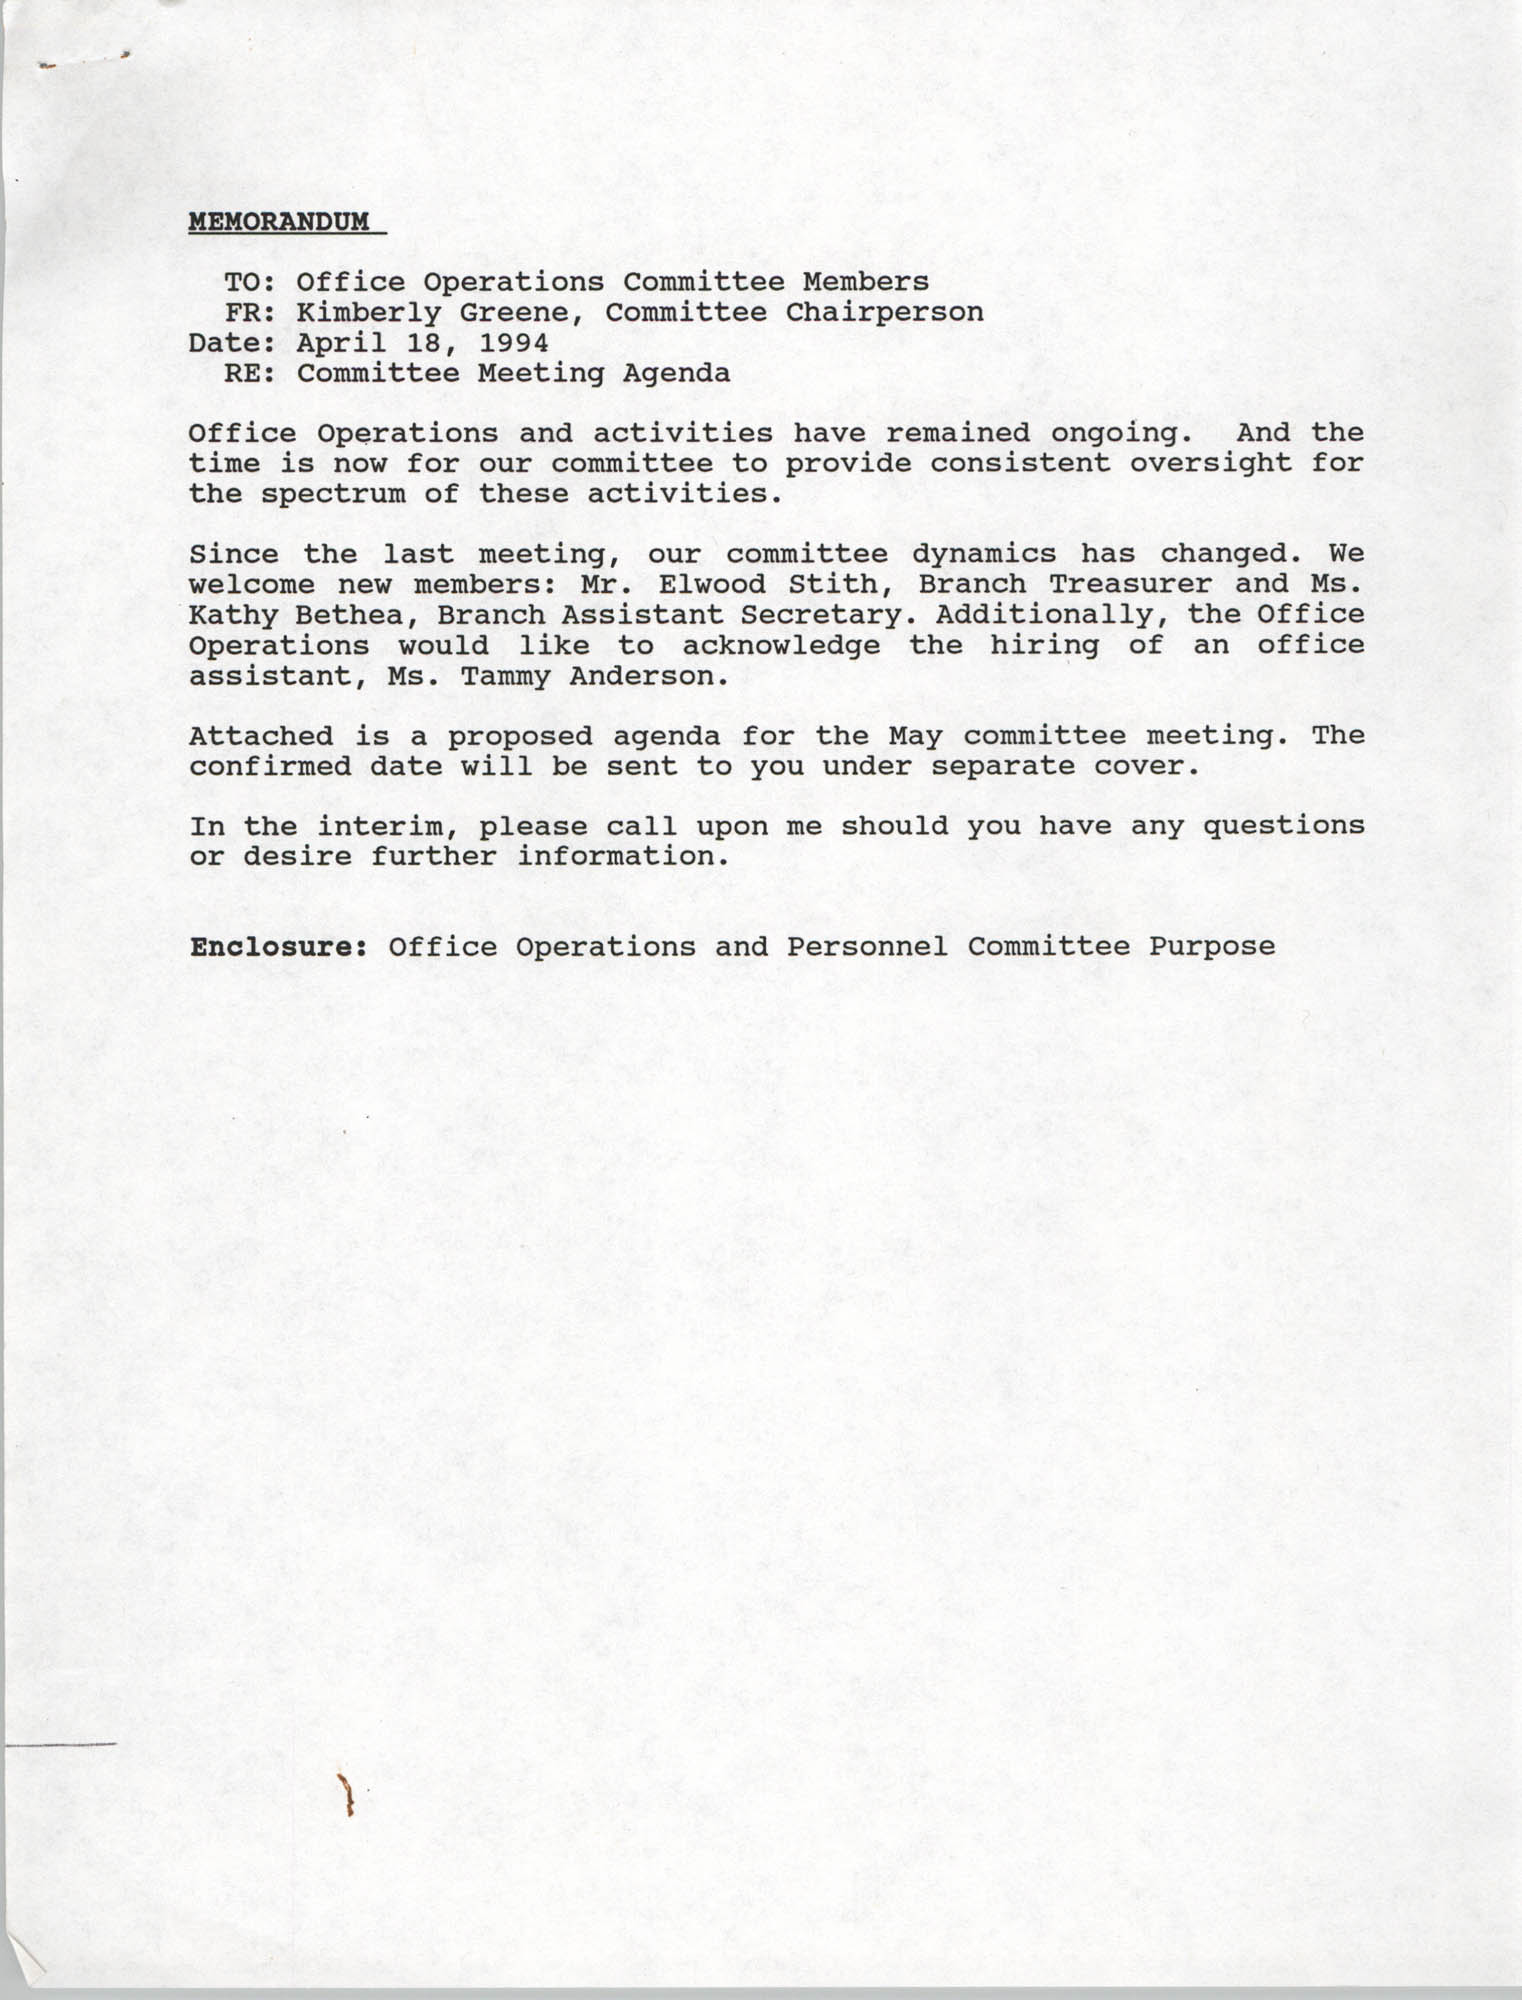 Charleston Branch of the NAACP Memorandum, April 18, 1994